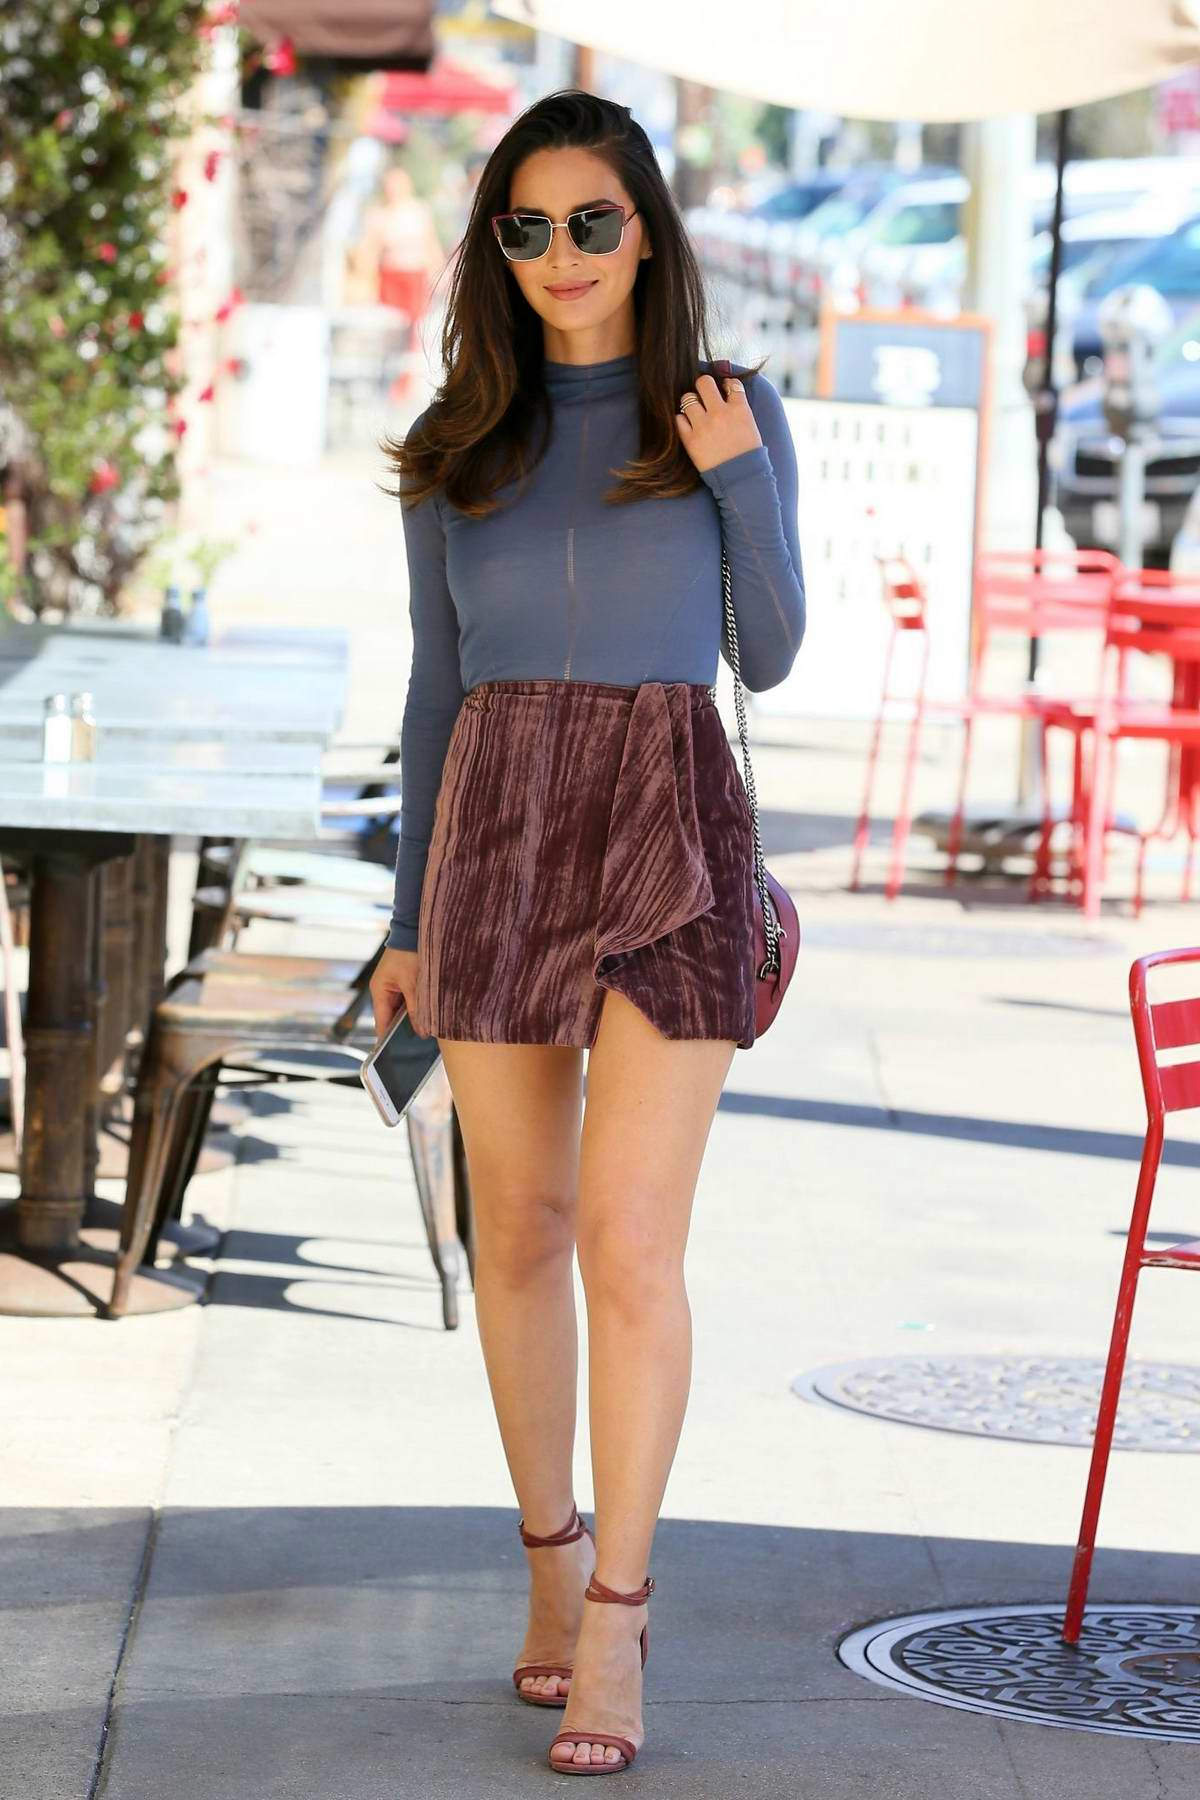 Olivia Munn looks stunning in a miniskirt and pastel blue top while out in Los Angeles